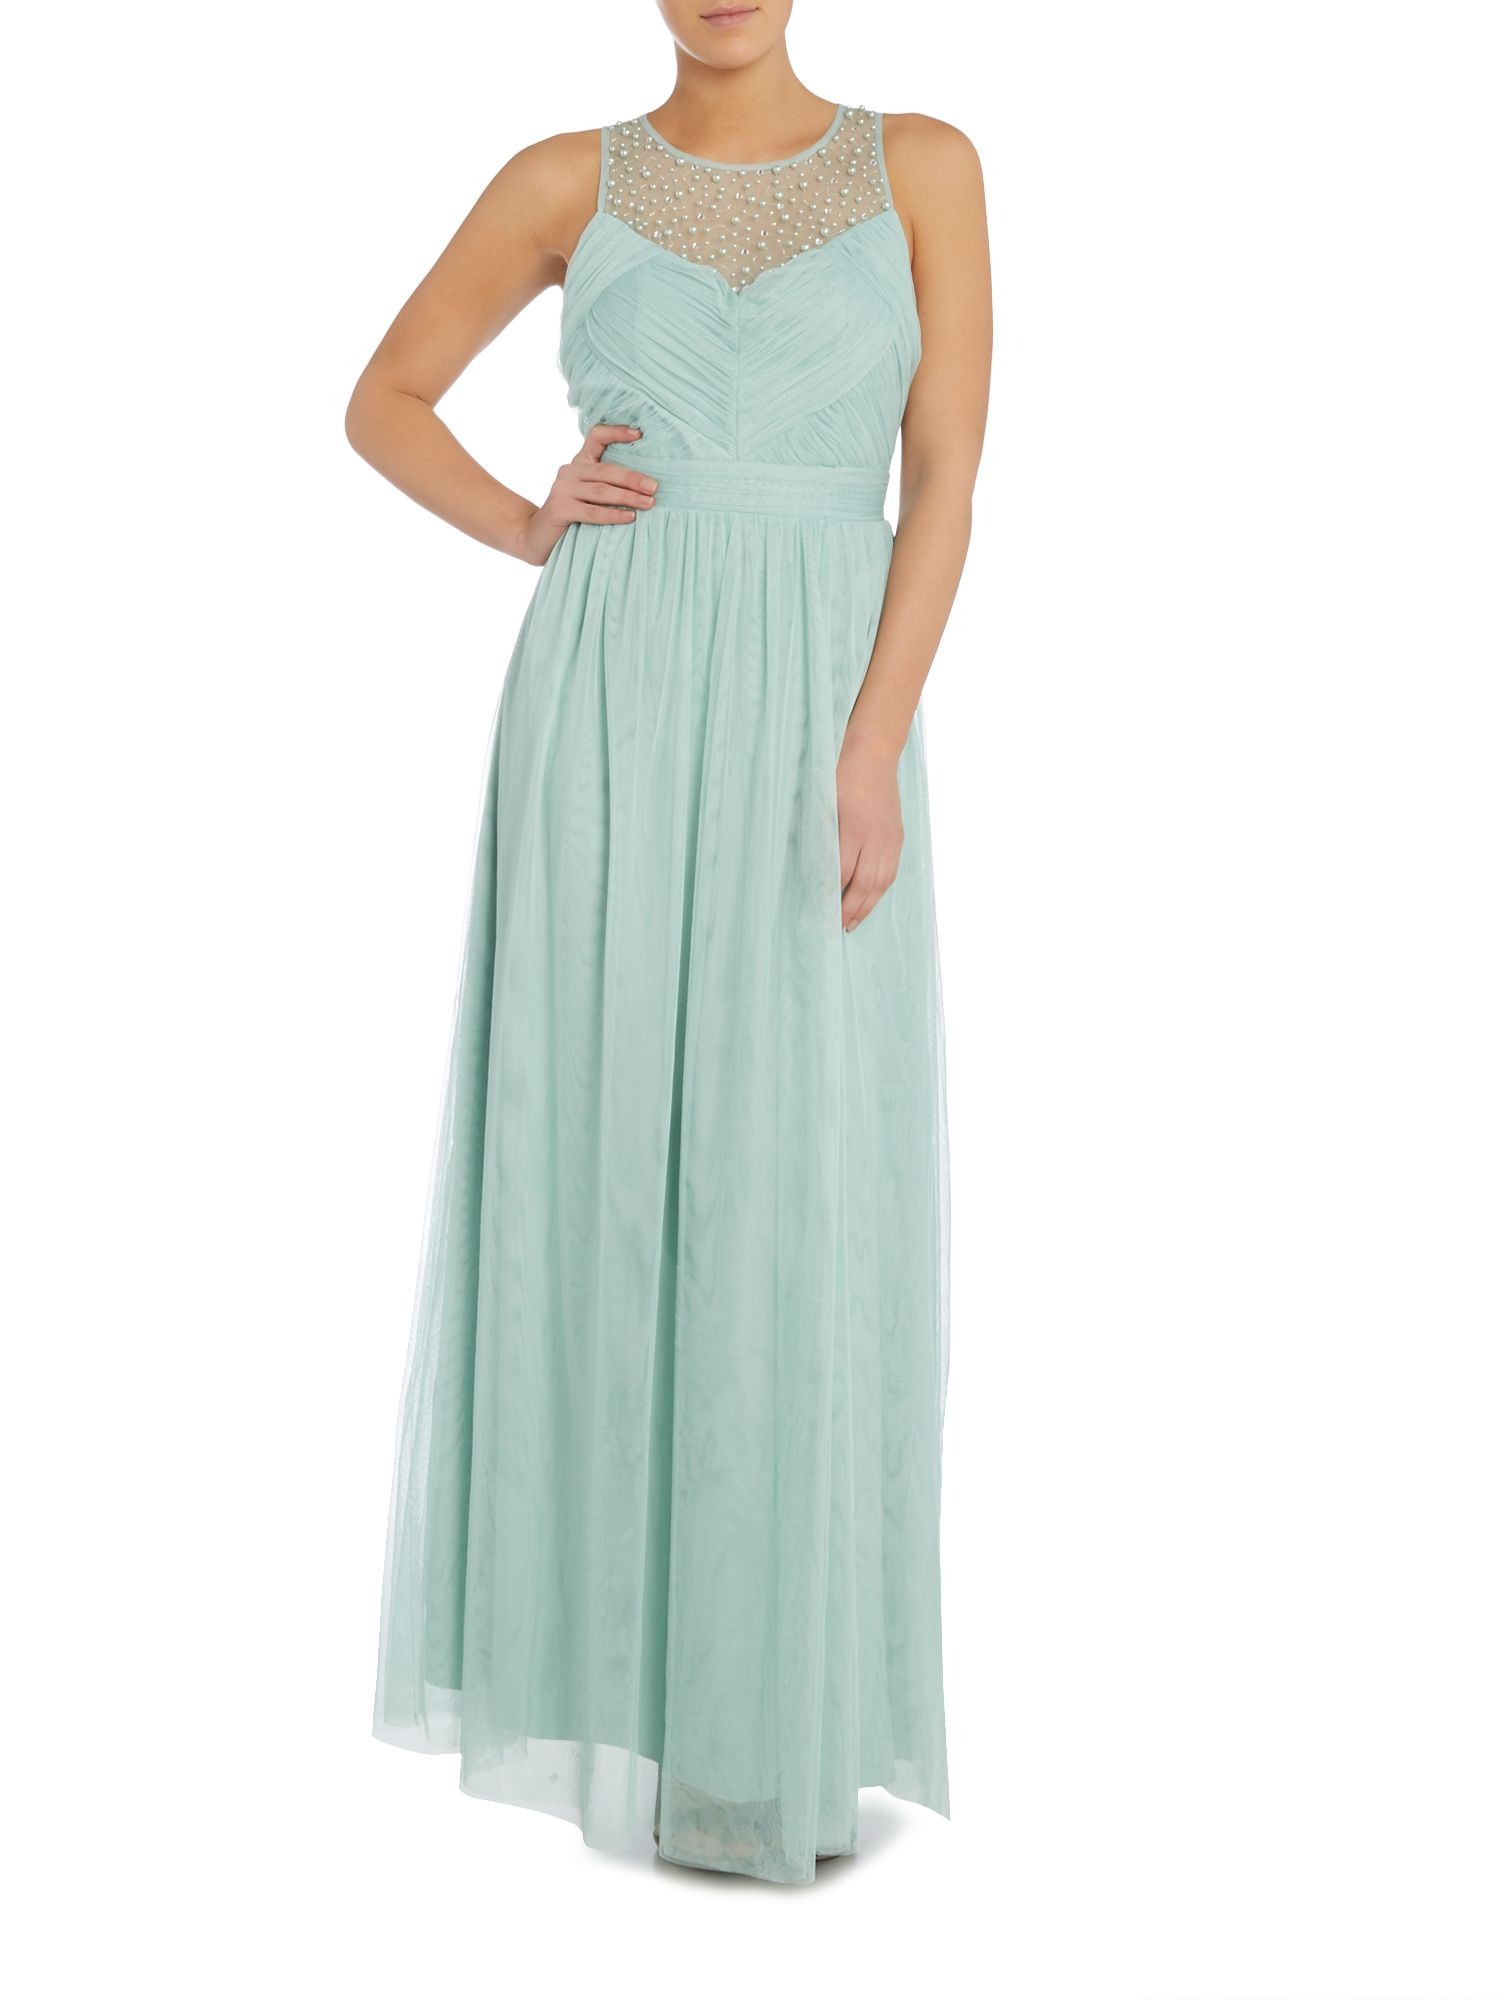 Cool wedding dresses for young: Lilac bridesmaid dresses house of fraser